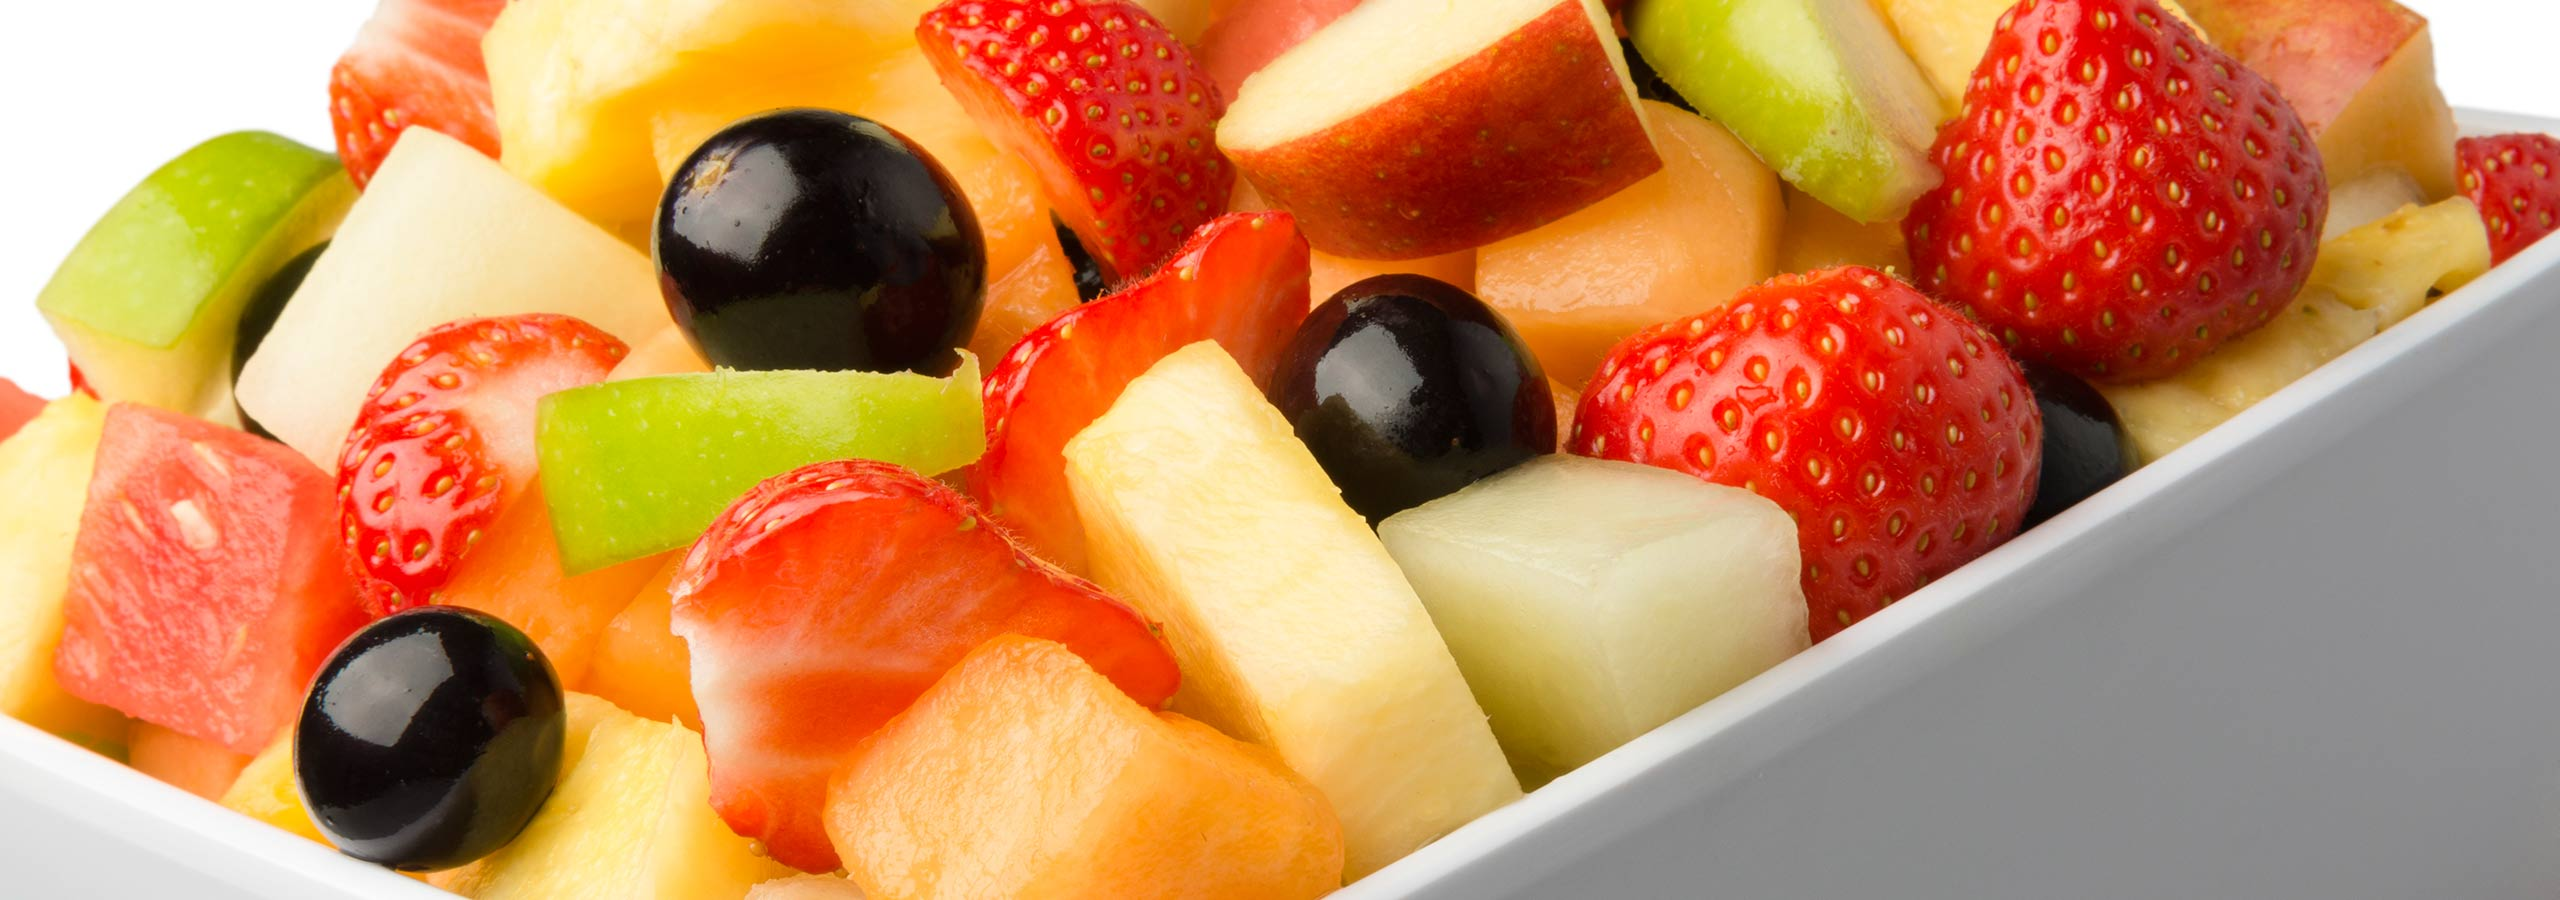 fruitsalade_detail